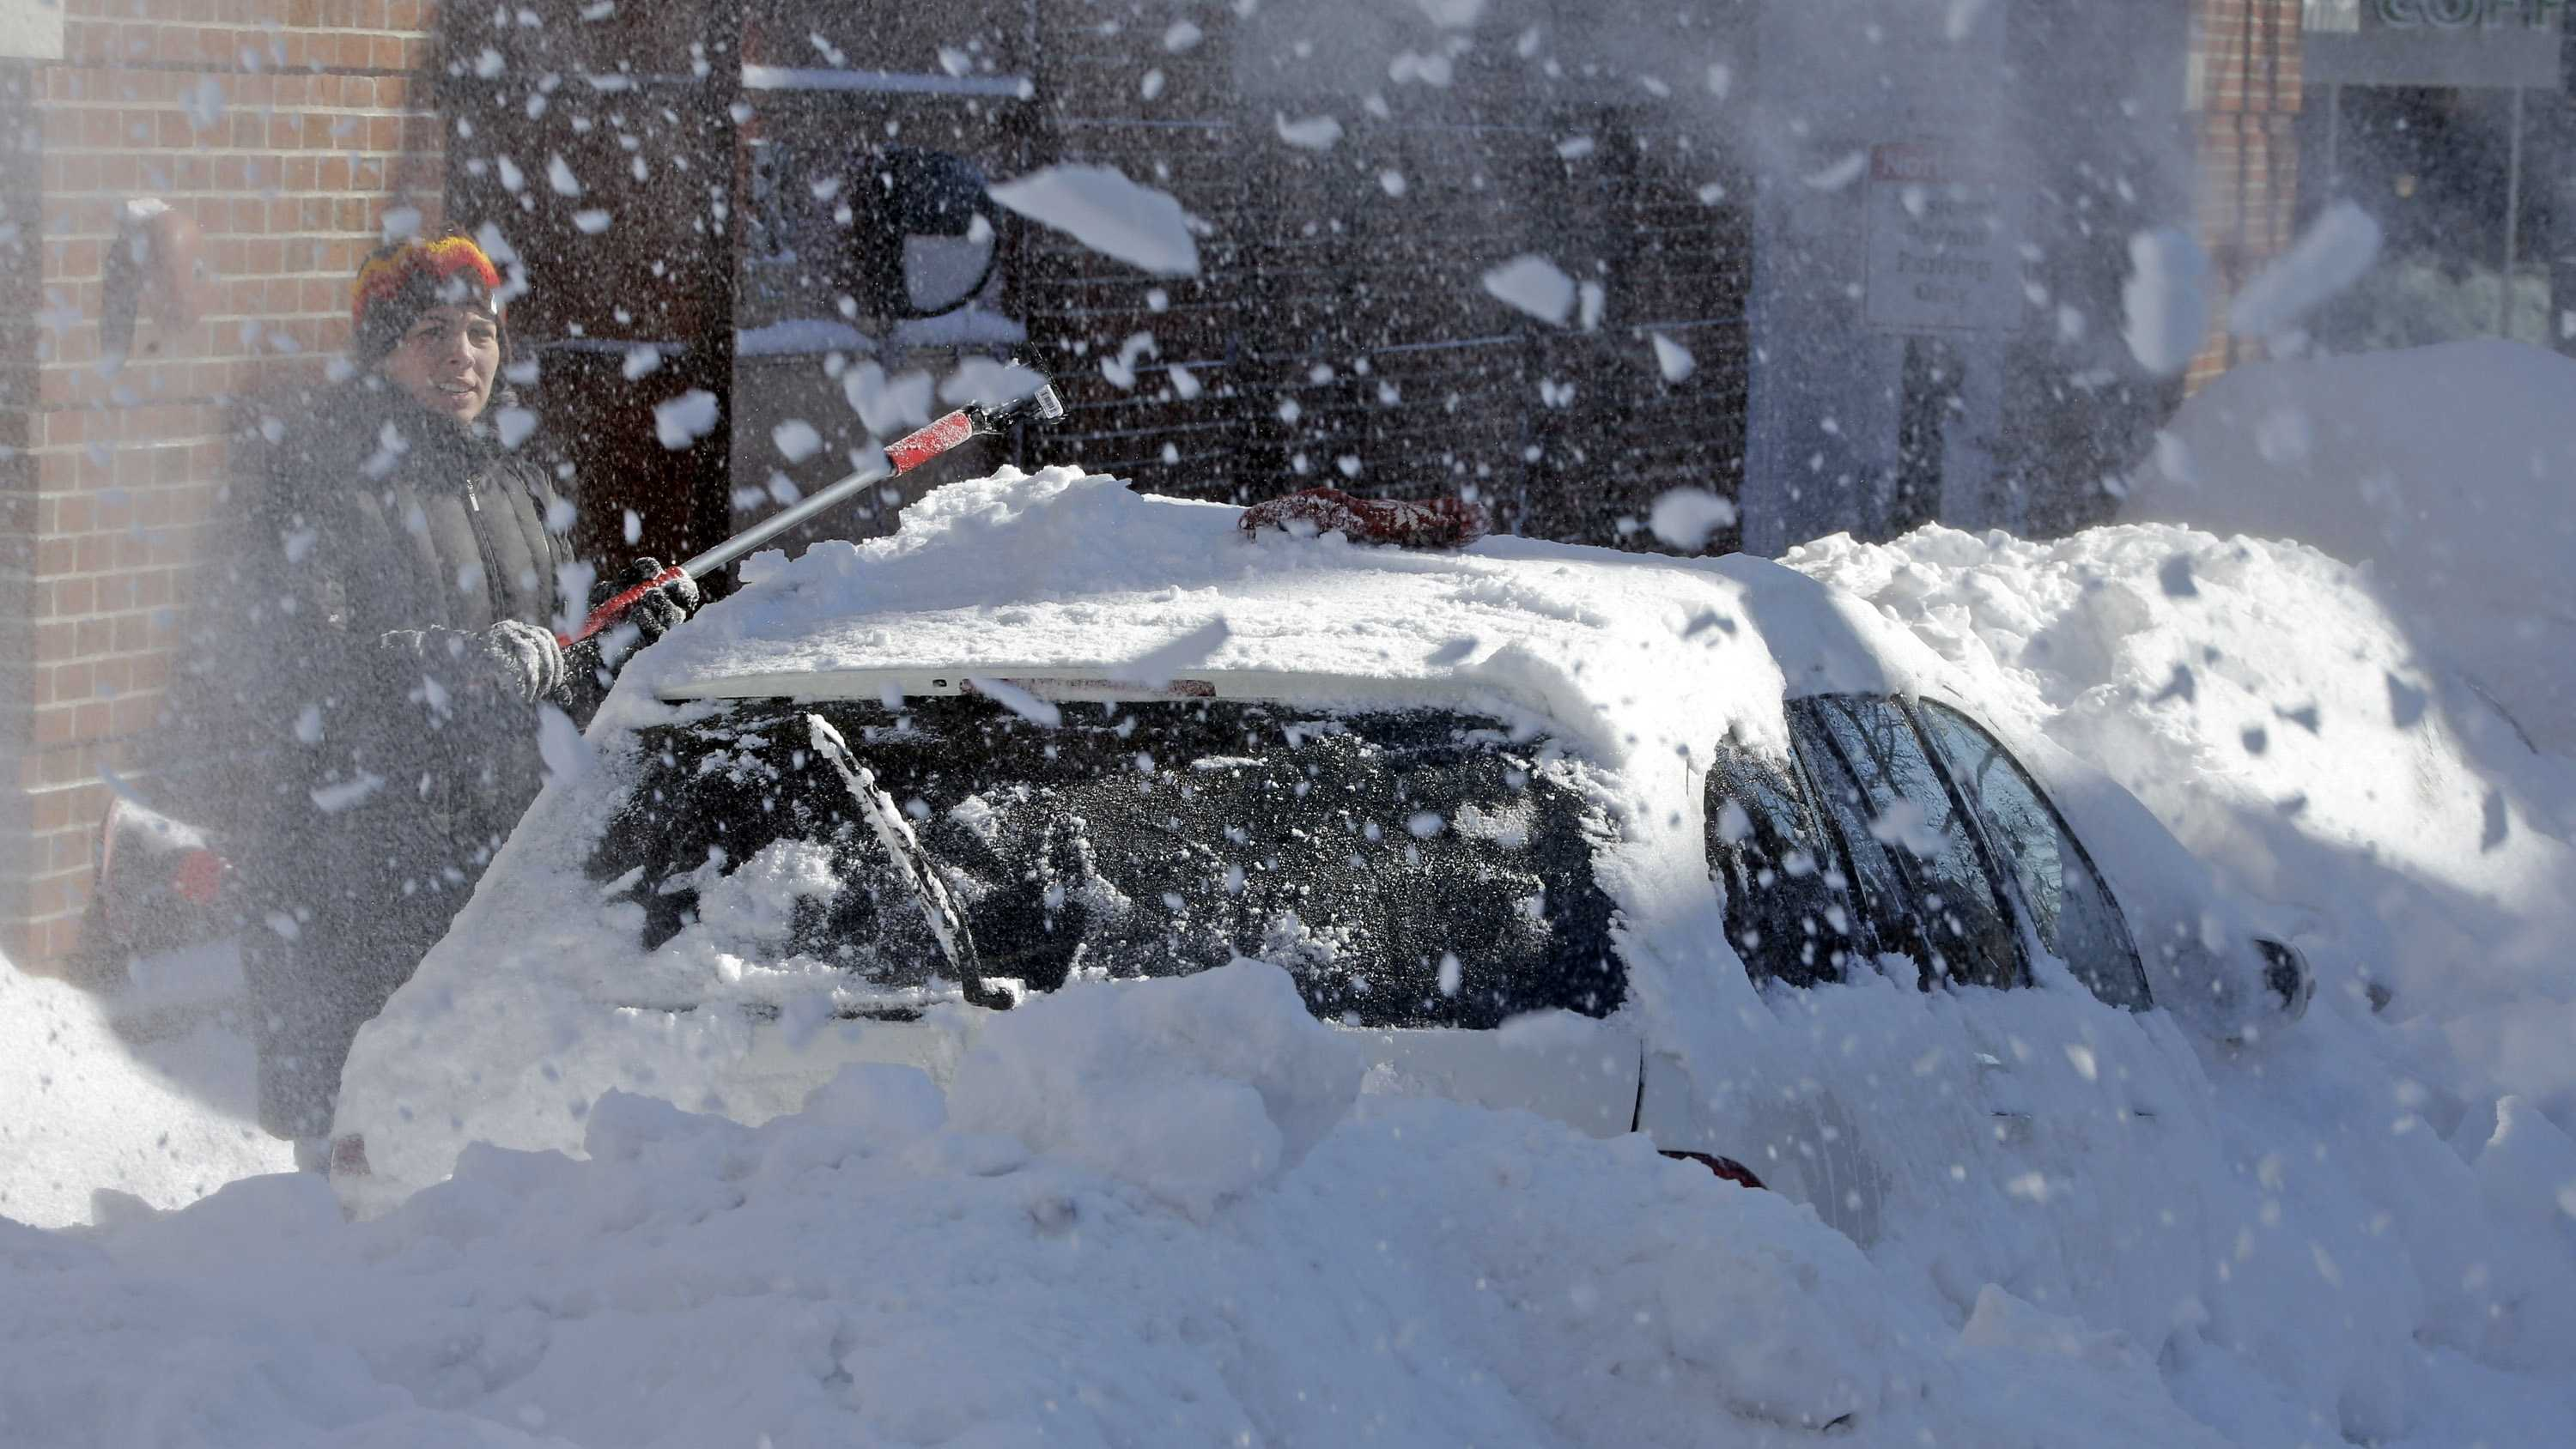 A woman on North street in the North End neighborhood of Boston, digs out her car as a neighbor runs a snow blower, Sunday, Feb. 10, 2013.